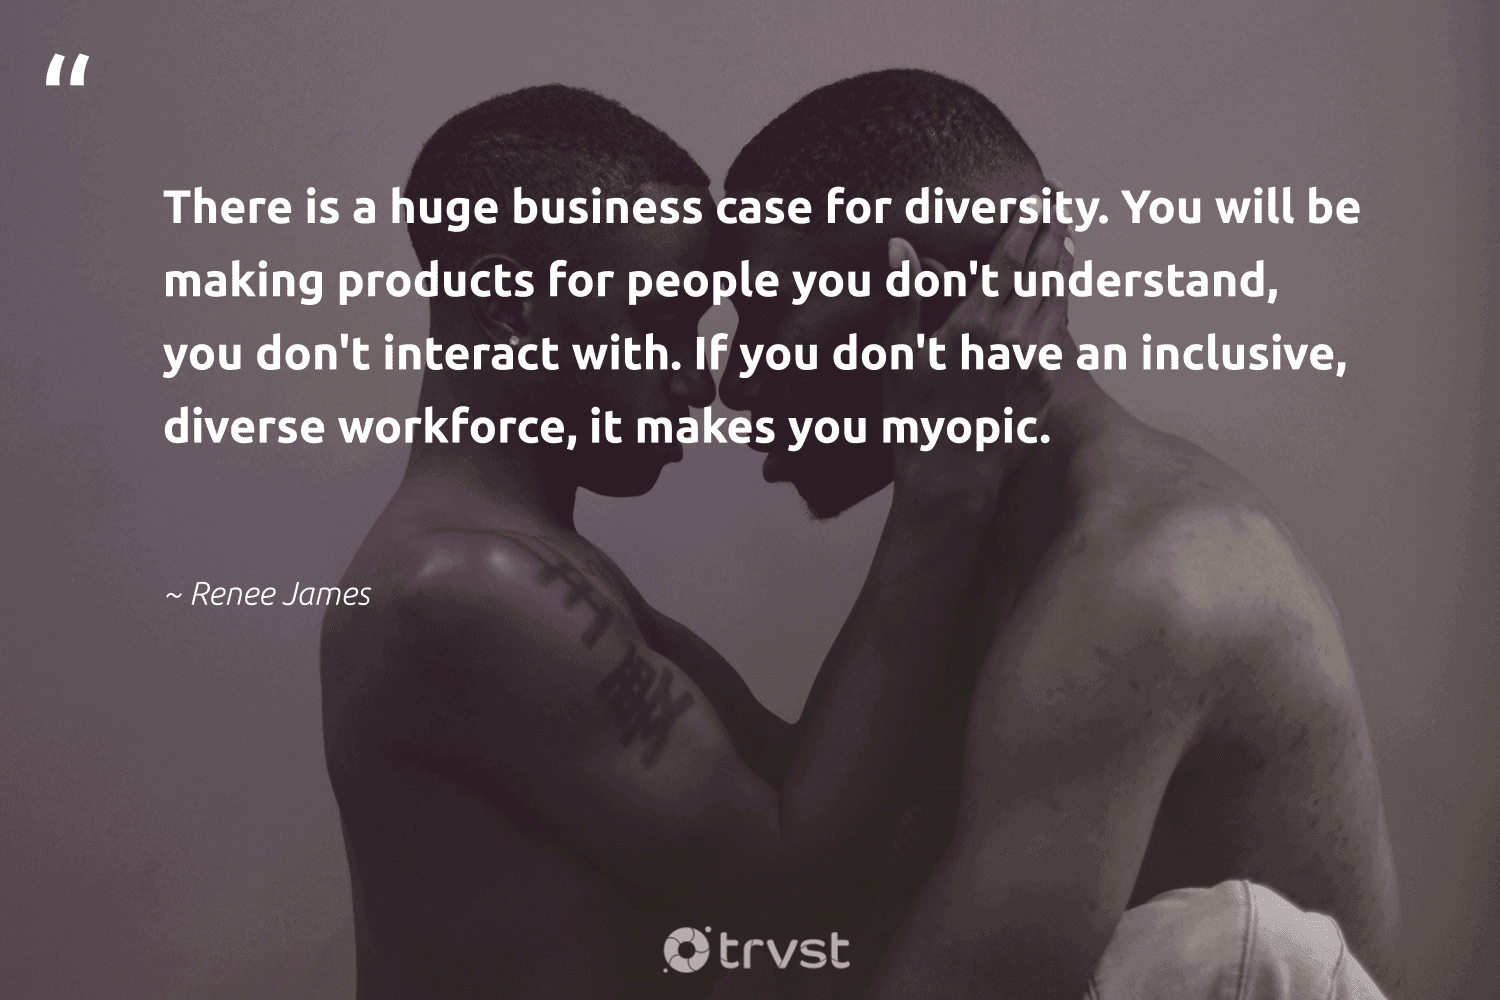 """""""There is a huge business case for diversity. You will be making products for people you don't understand, you don't interact with. If you don't have an inclusive, diverse workforce, it makes you myopic.""""  - Renee James #trvst #quotes #diversity #representationmatters #inclusion #weareallone #makeadifference #beinspired #discrimination #socialchange #giveback #bethechange"""